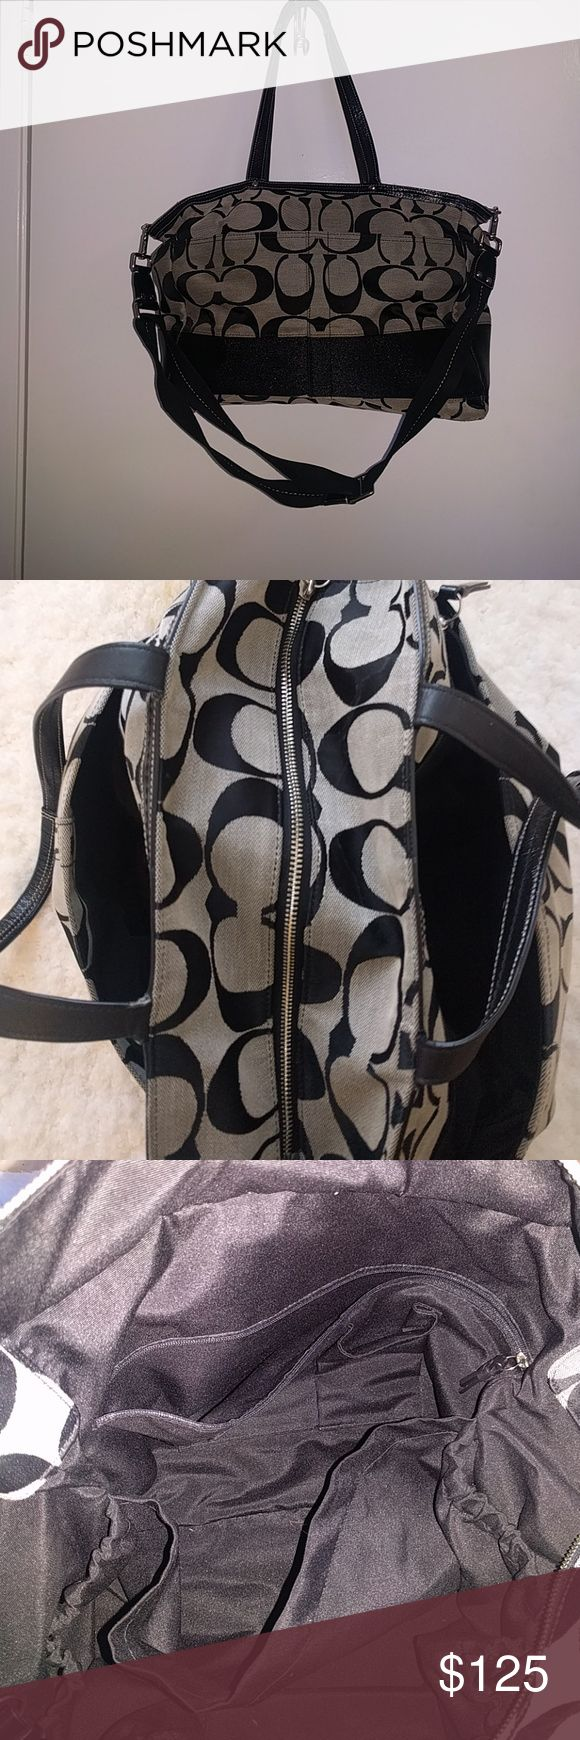 *price drop* Coach overnight/diaper bag Black and grey Coach overnight or diaper bag. Has tons of pockets inside and ample space for an overnight stay. Especially useful as a diaper bag. 2 large outside pockets ( 1 with a zipper) inside has 4 small elastic pockets perfect for storing baby bottles or water bottles. Coach Bags Travel Bags